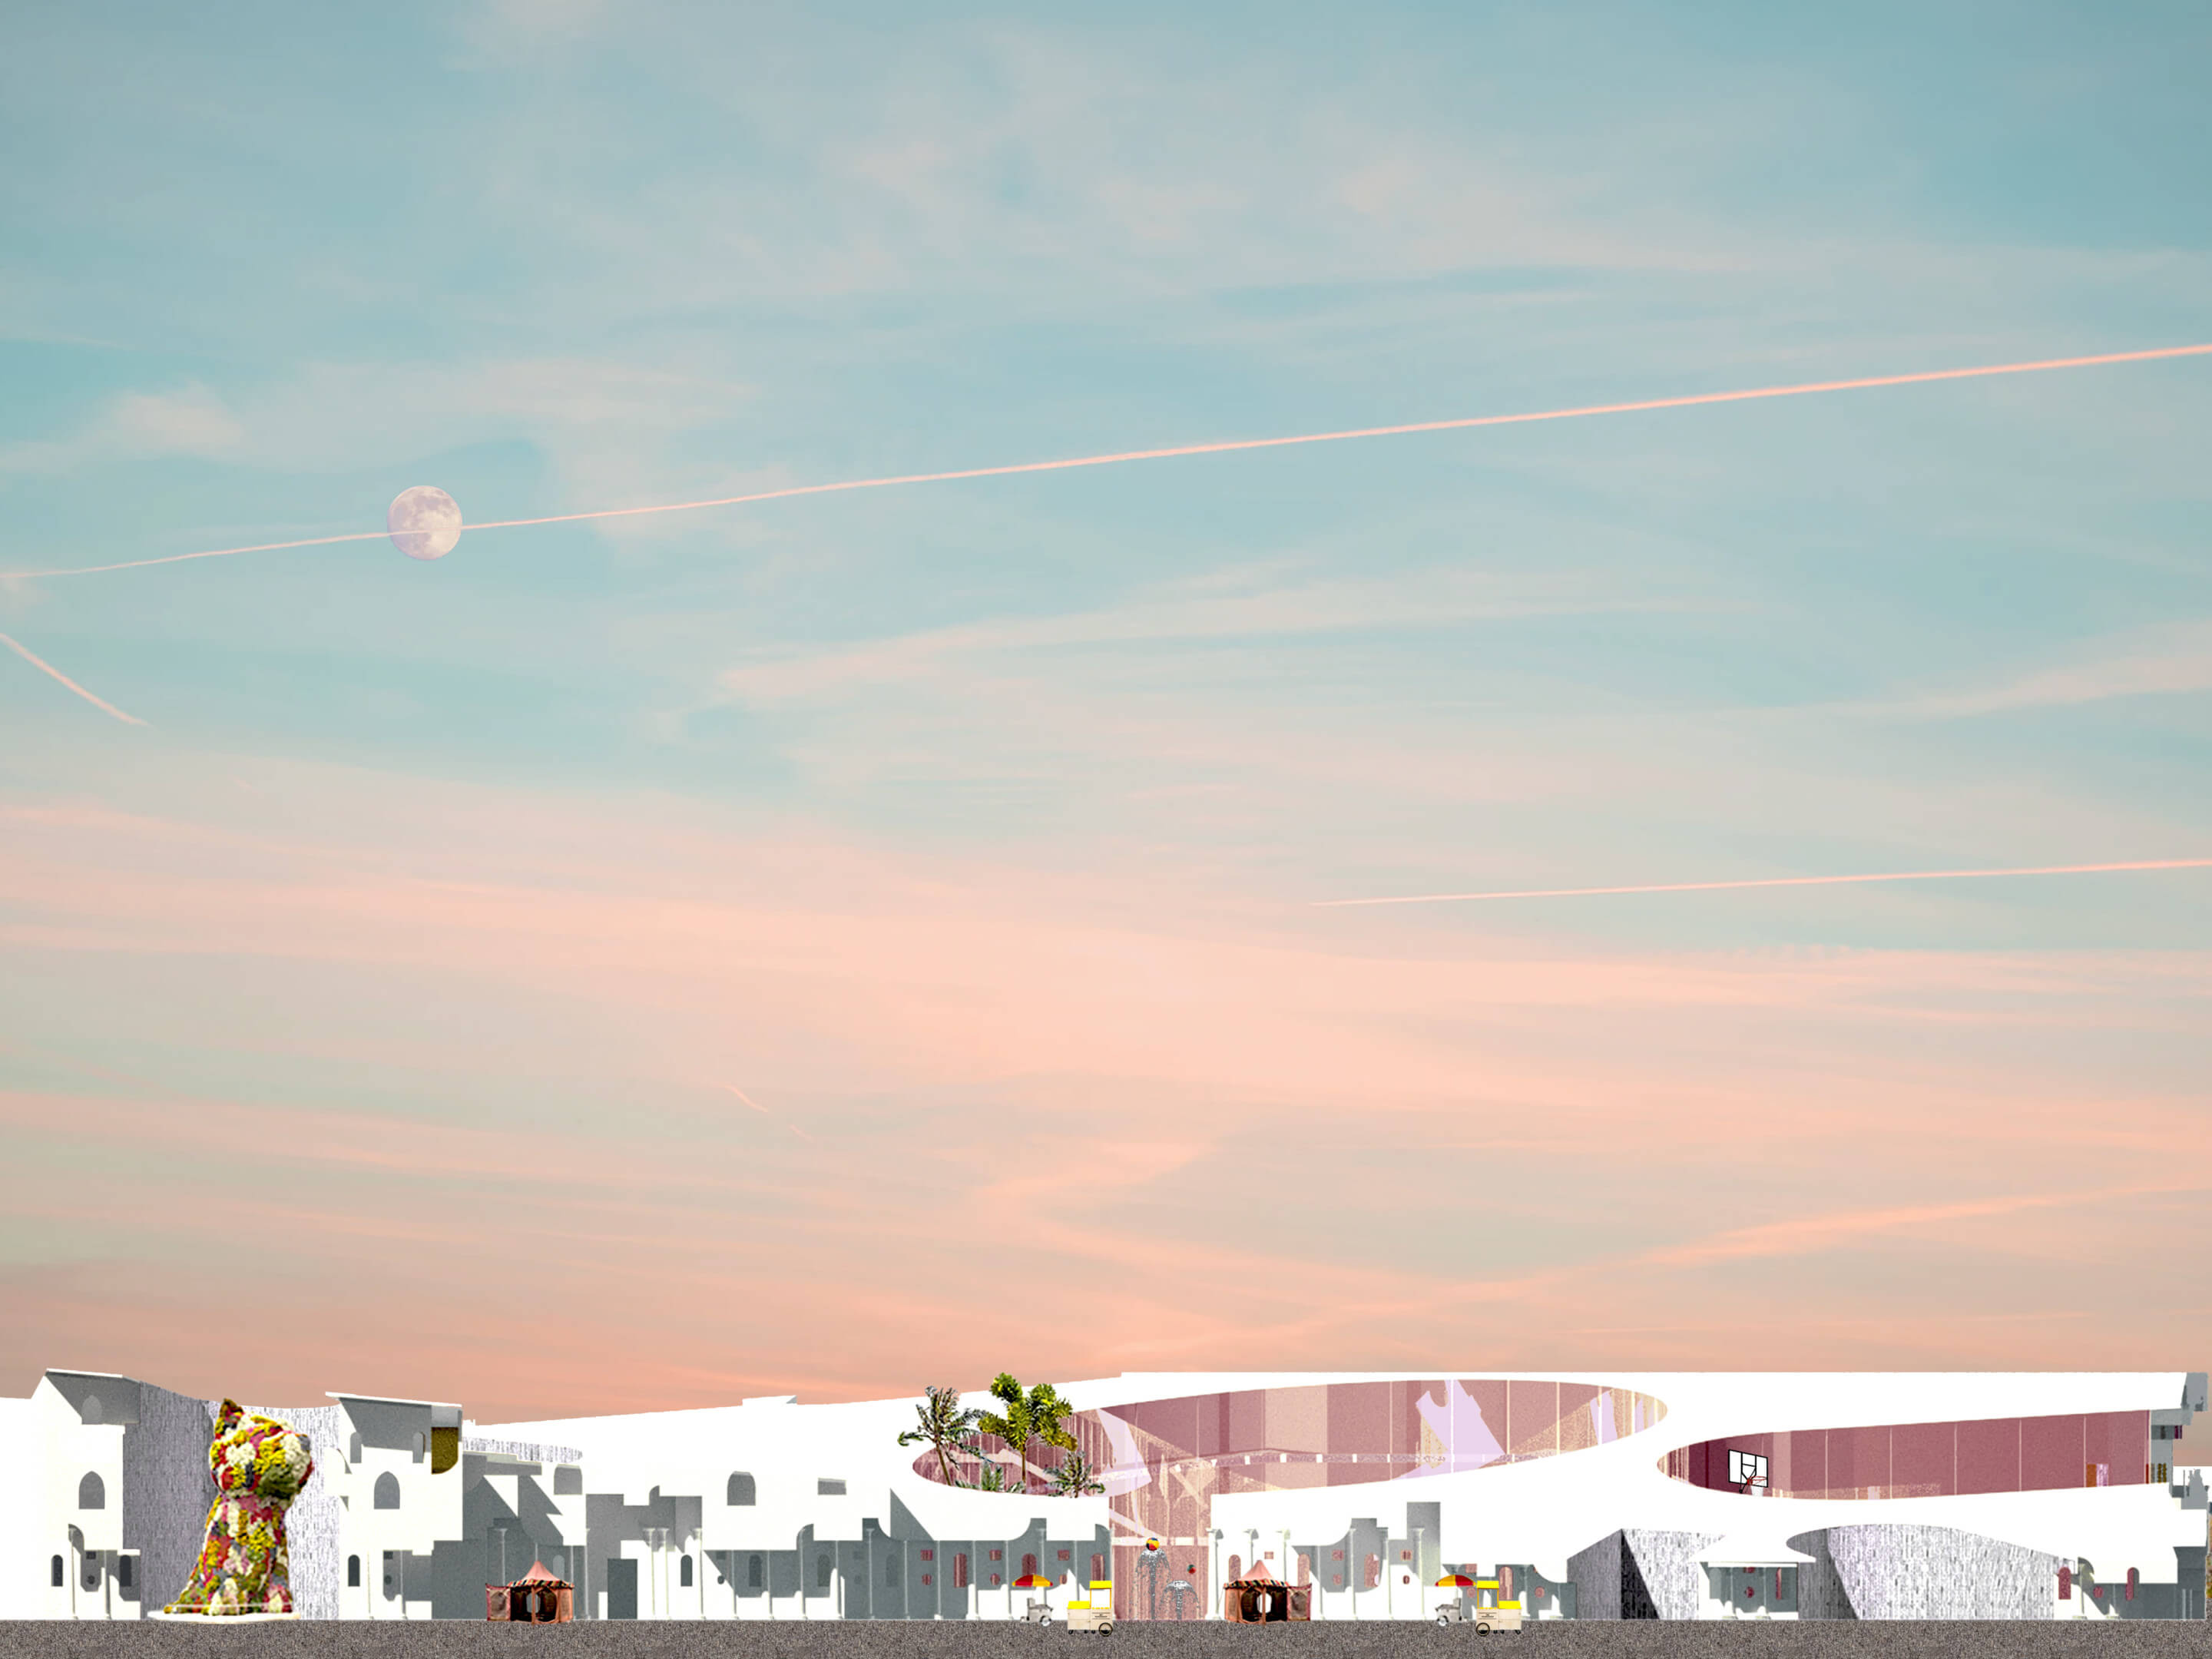 digital collage of various white buildings and vegetation below a blue and pink sky